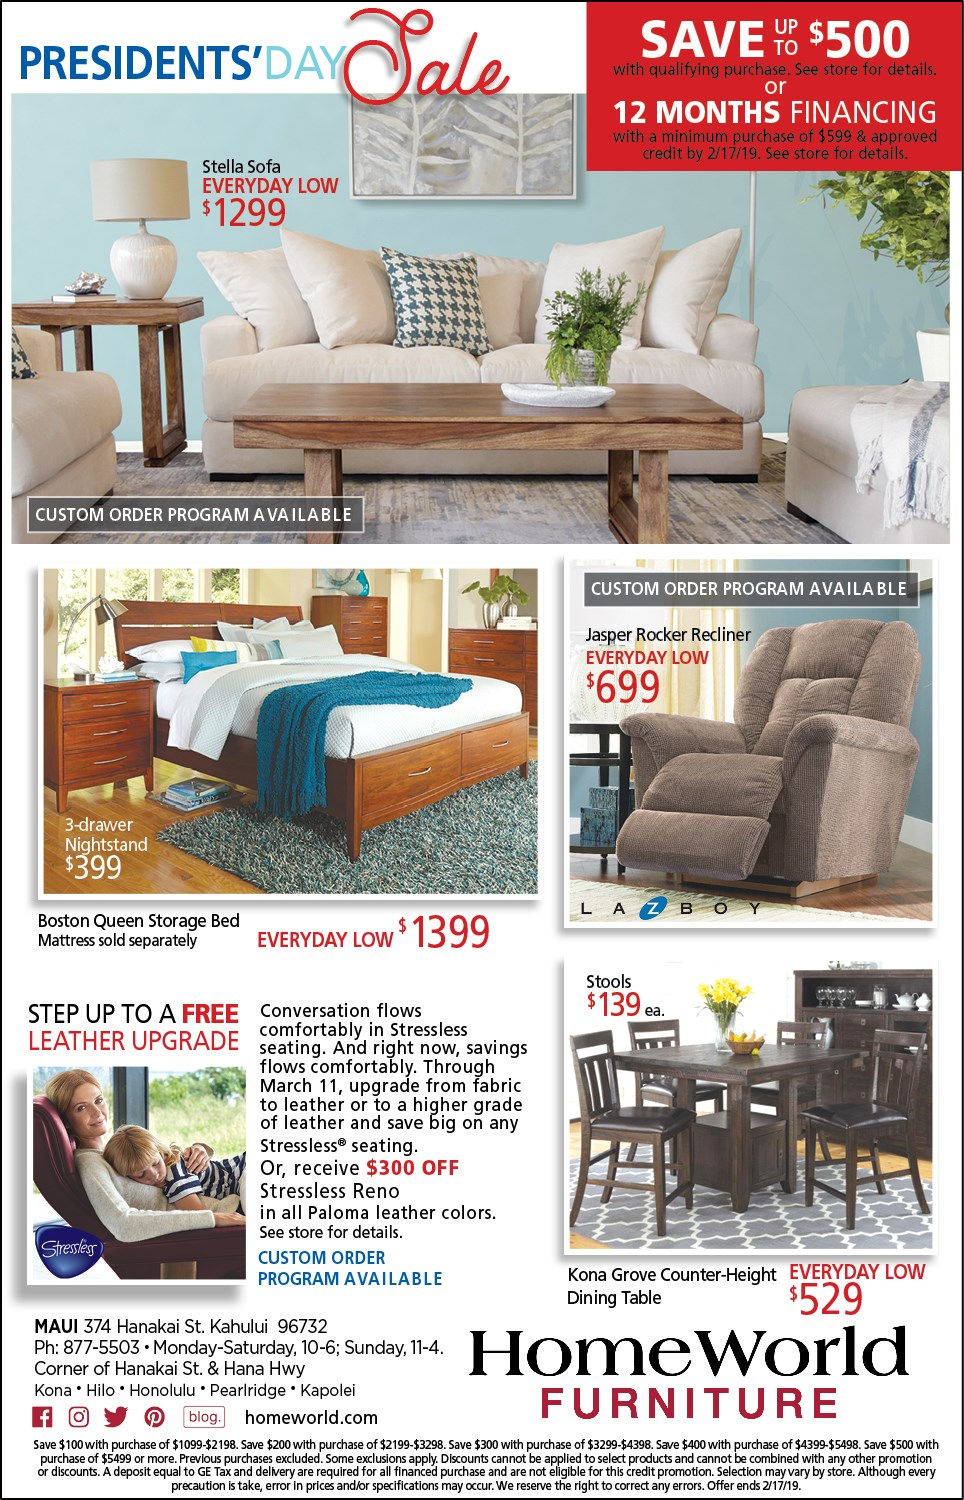 Clearance Center Aiea Hawaii 96701 Furniture Store